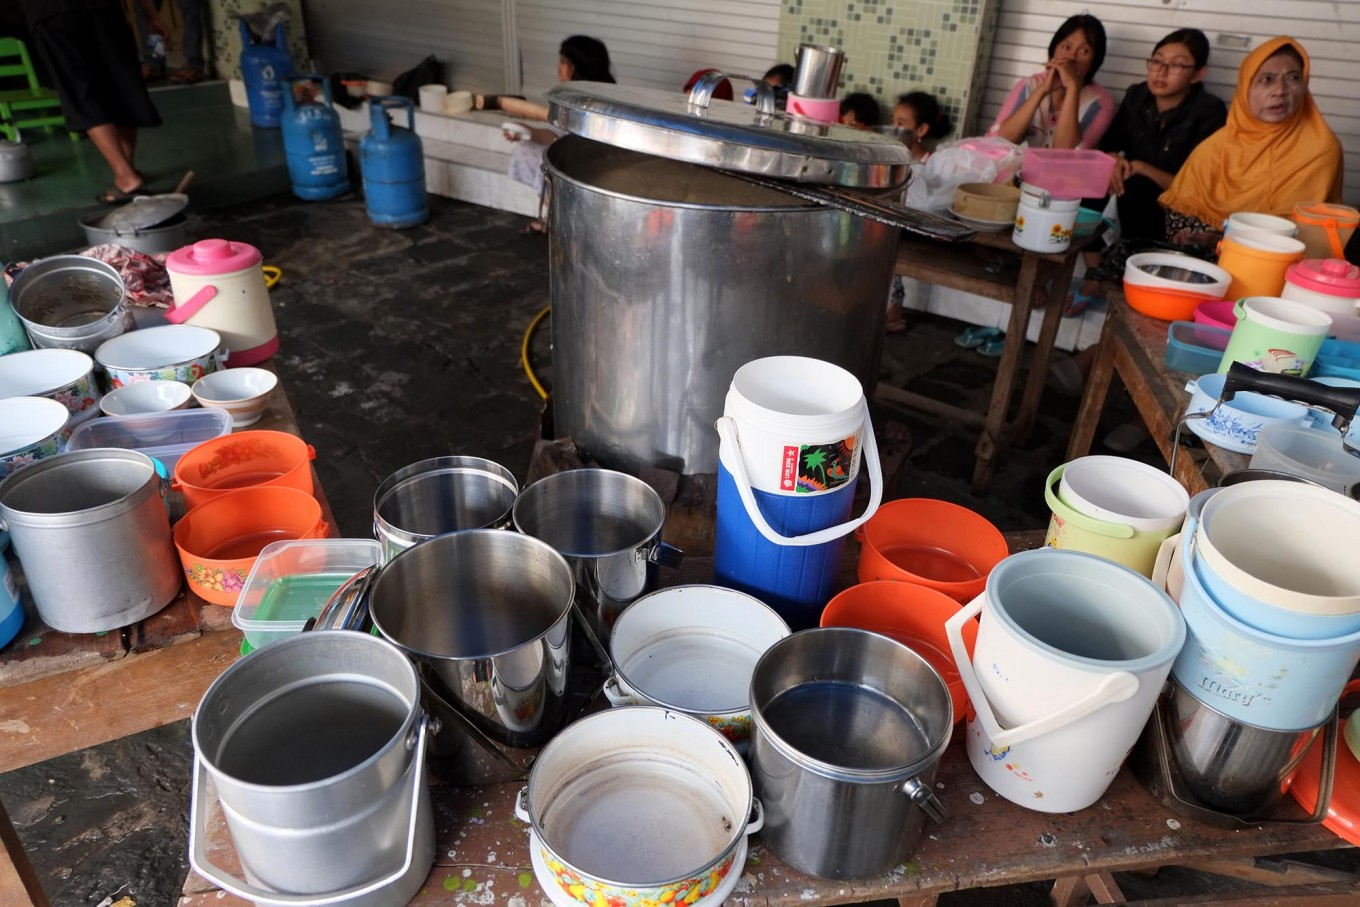 Securing a place: Residents arrive at the mosque and put their food containers on the table while patiently waiting for the porridge to be distributed. JP/ Ganug Nugroho Adi